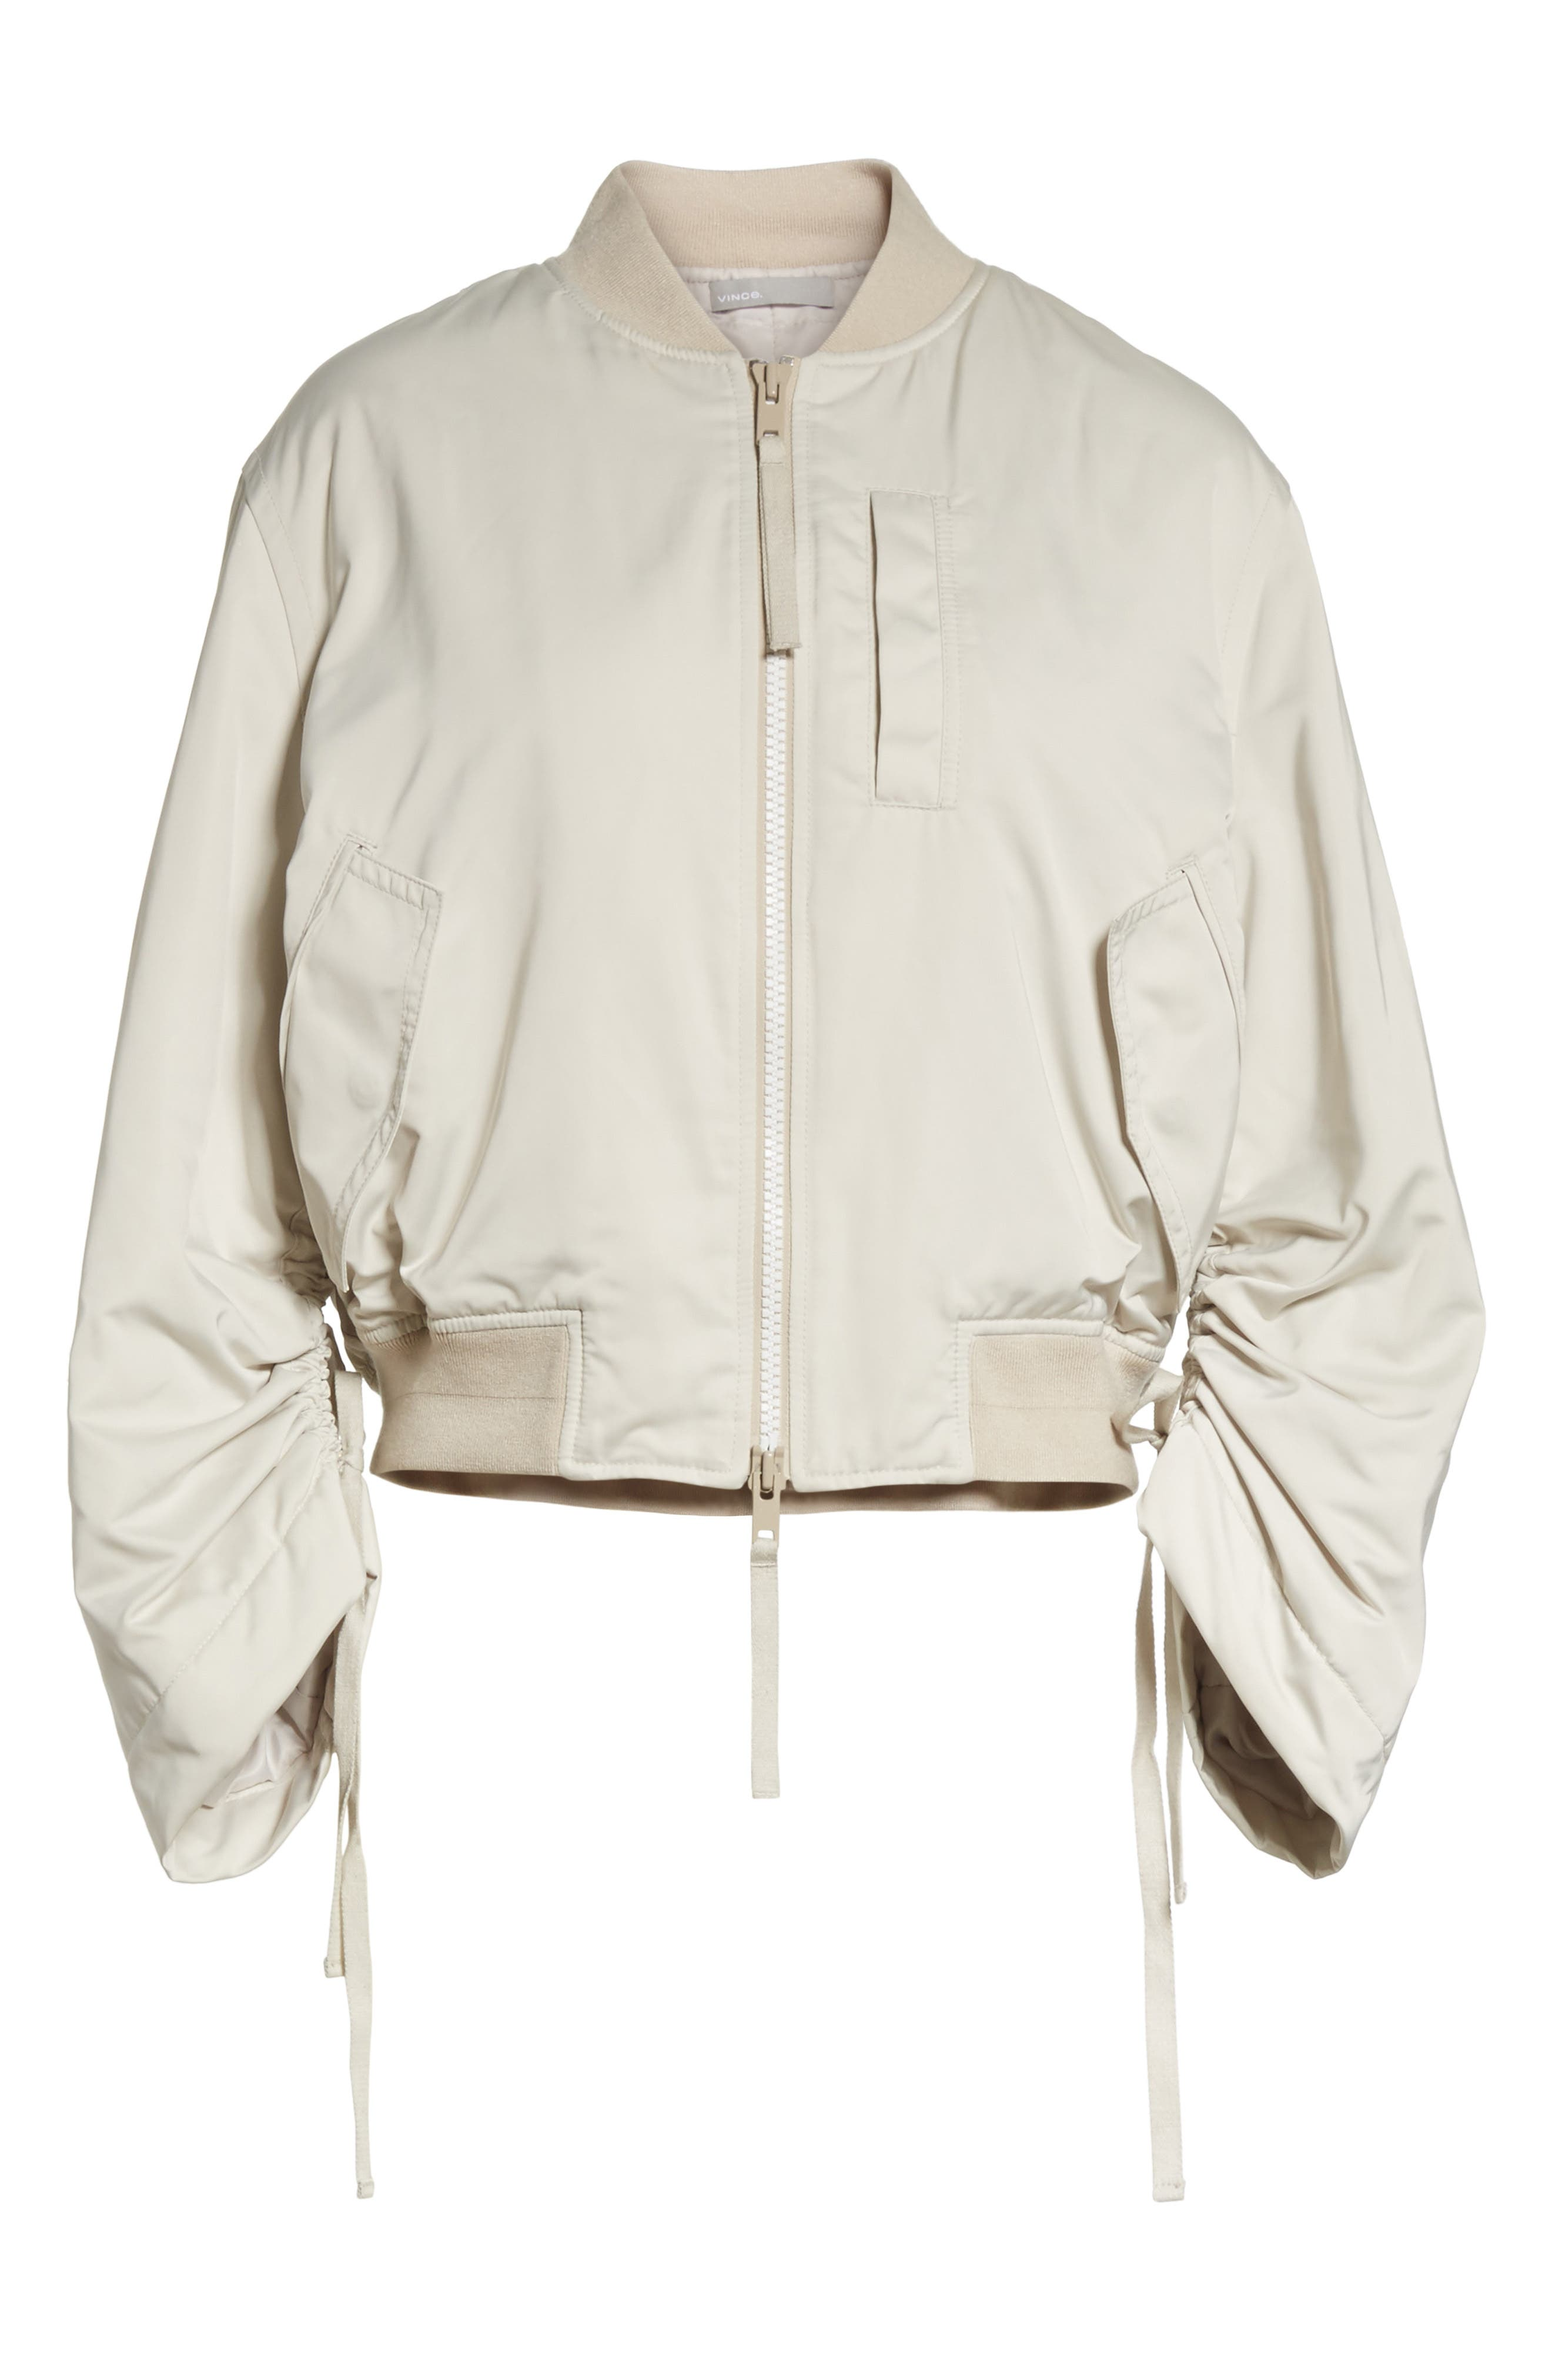 Parachute Bomber Jacket,                             Alternate thumbnail 6, color,                             Chalet